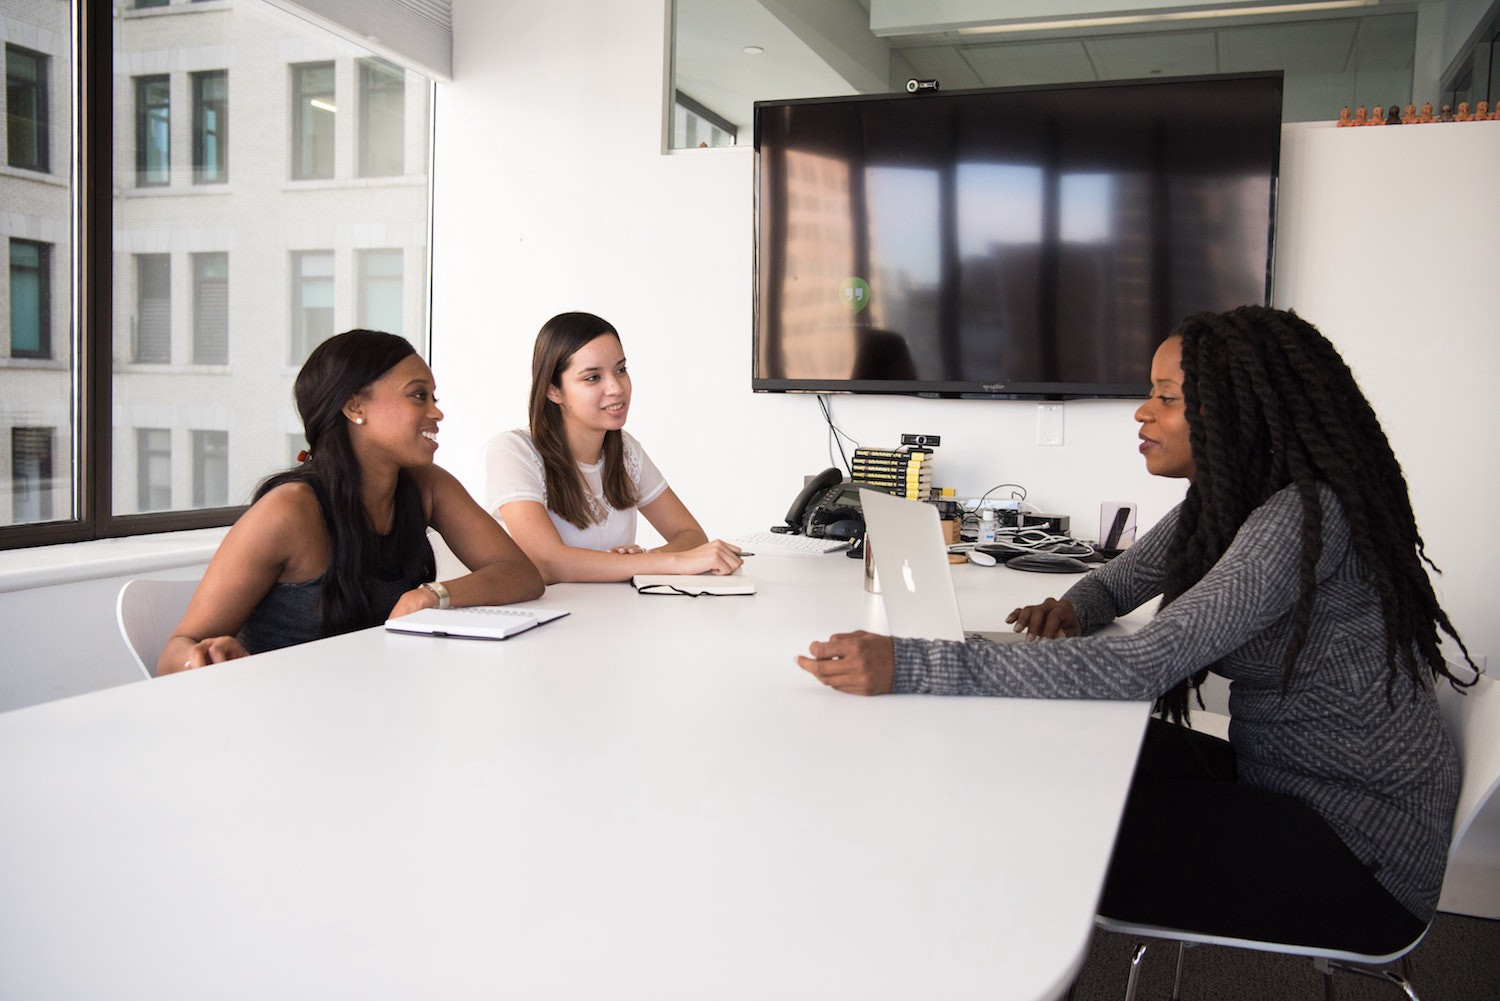 Three ladies sit around a desk with a laptop to discuss work in a bright office room